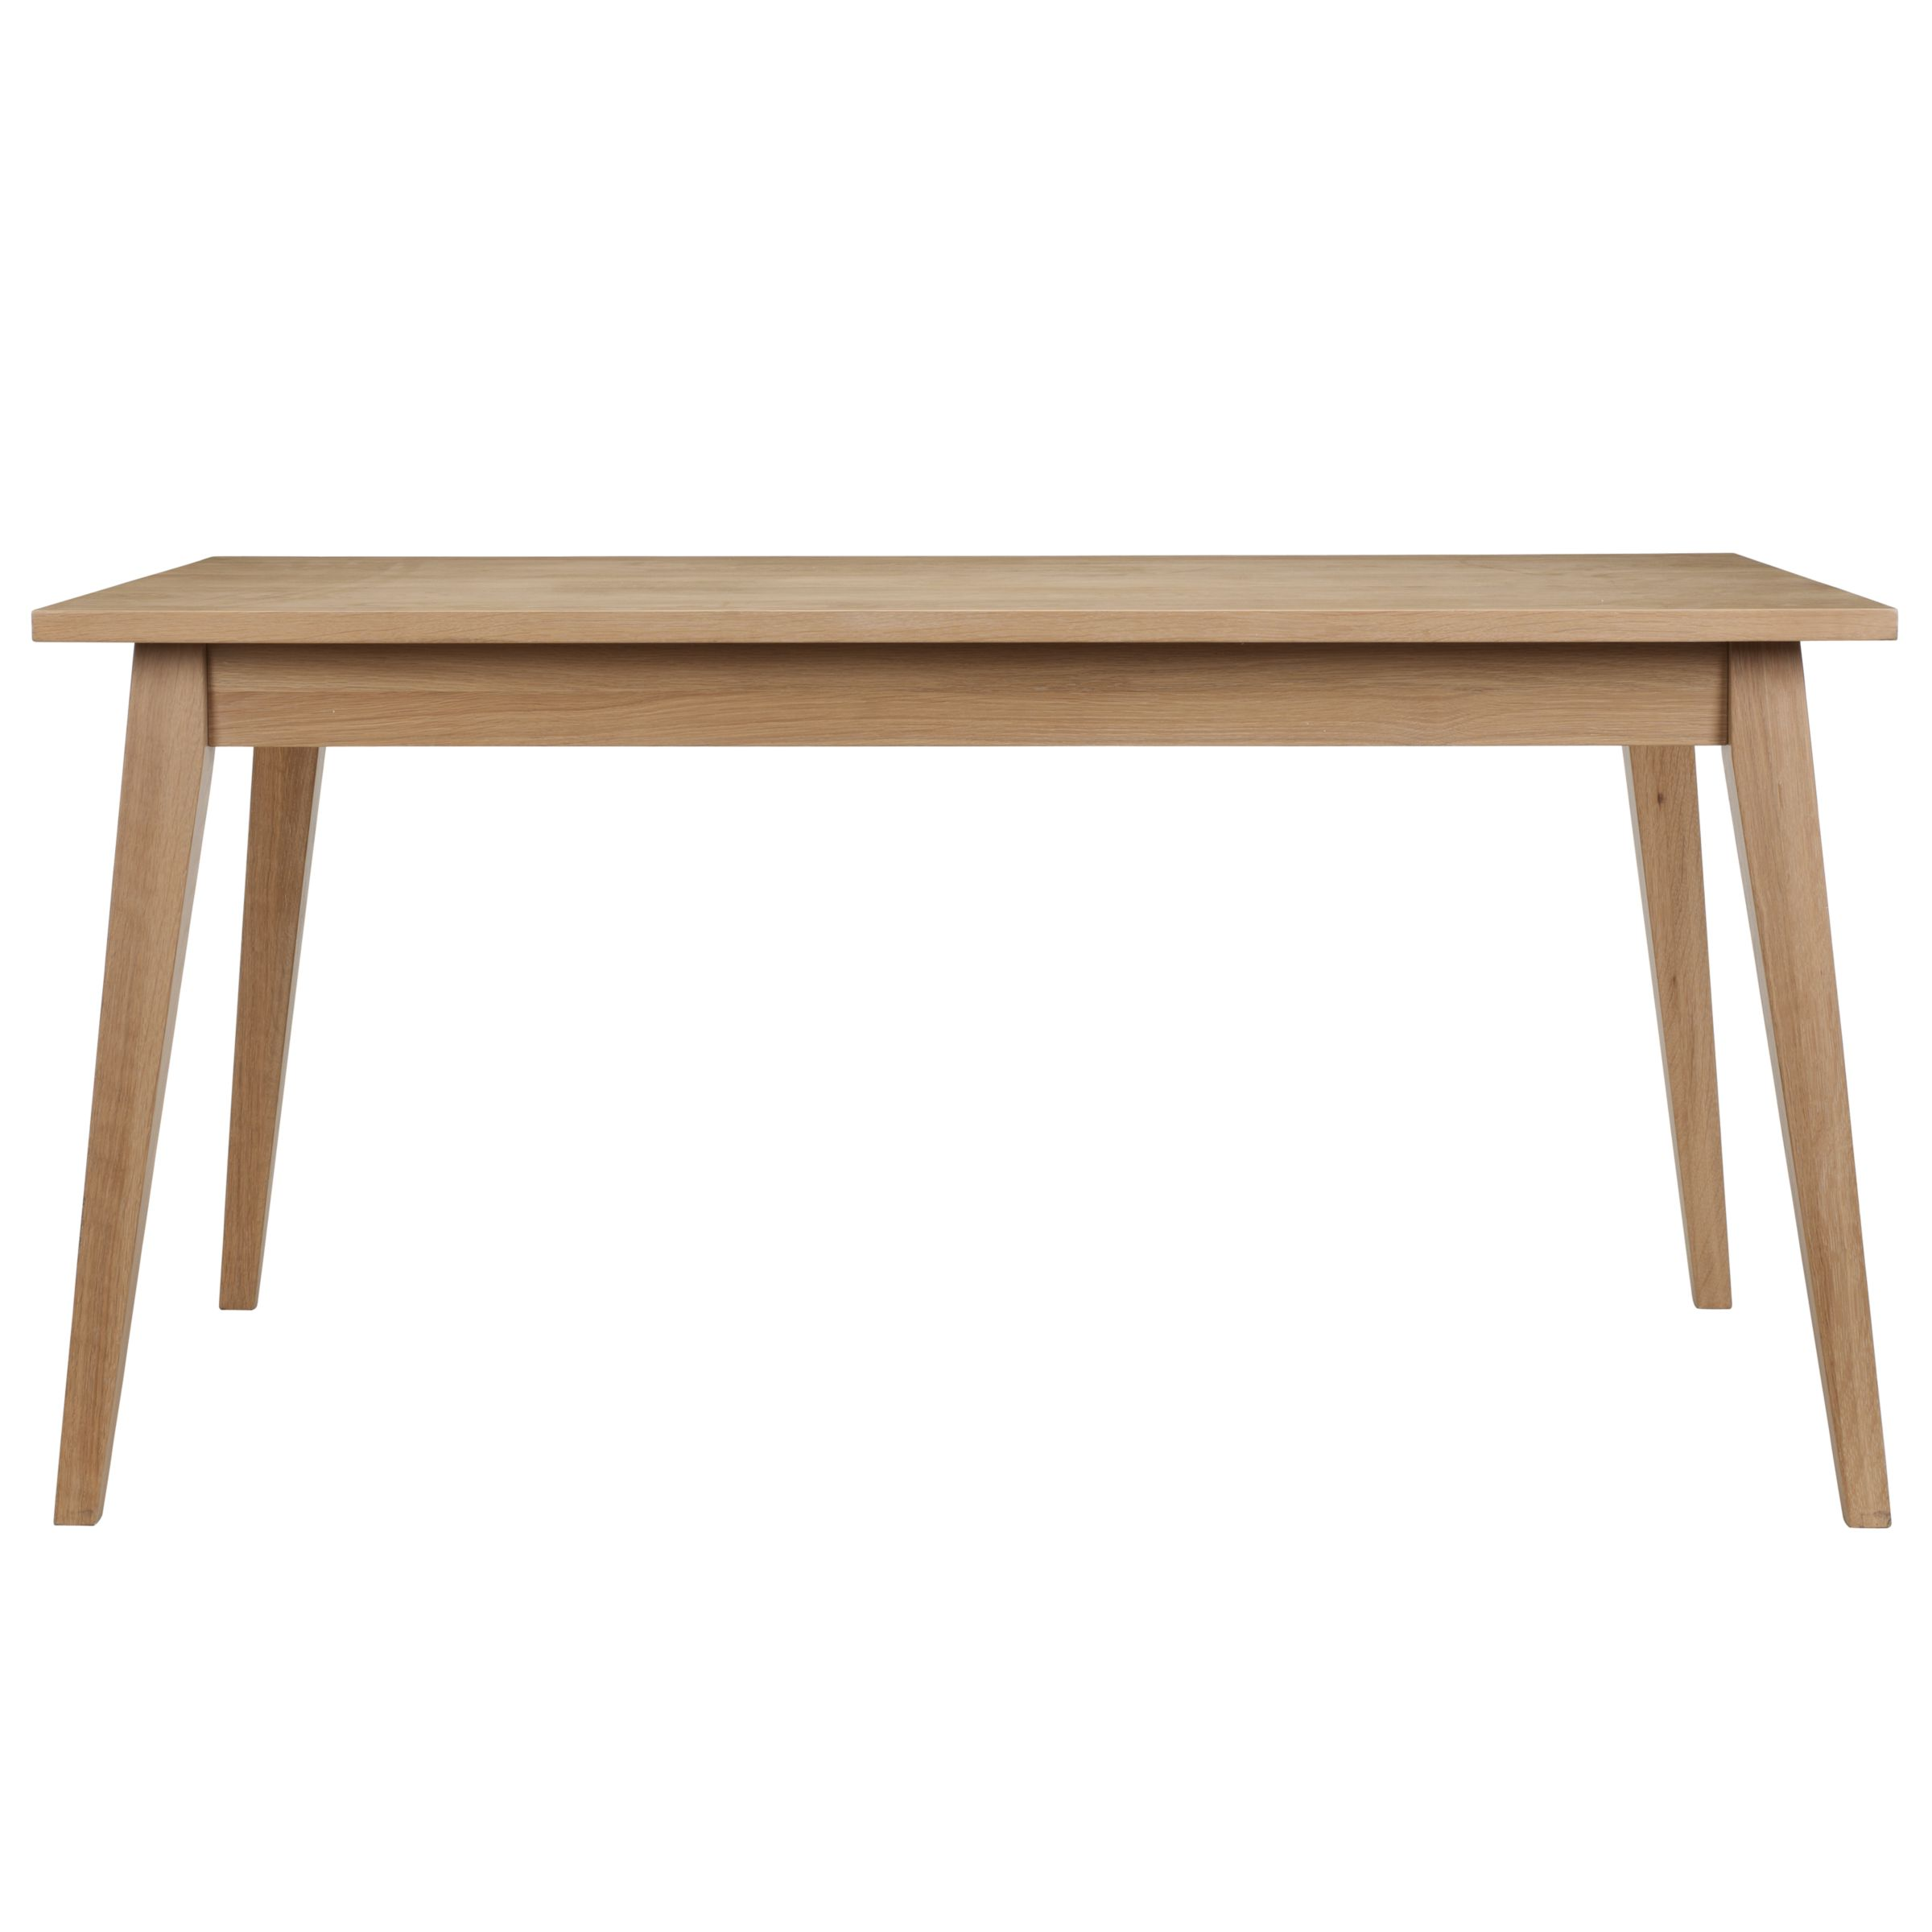 john lewis oak dining tables : 231213500 from www.comparestoreprices.co.uk size 2400 x 2400 jpeg 132kB